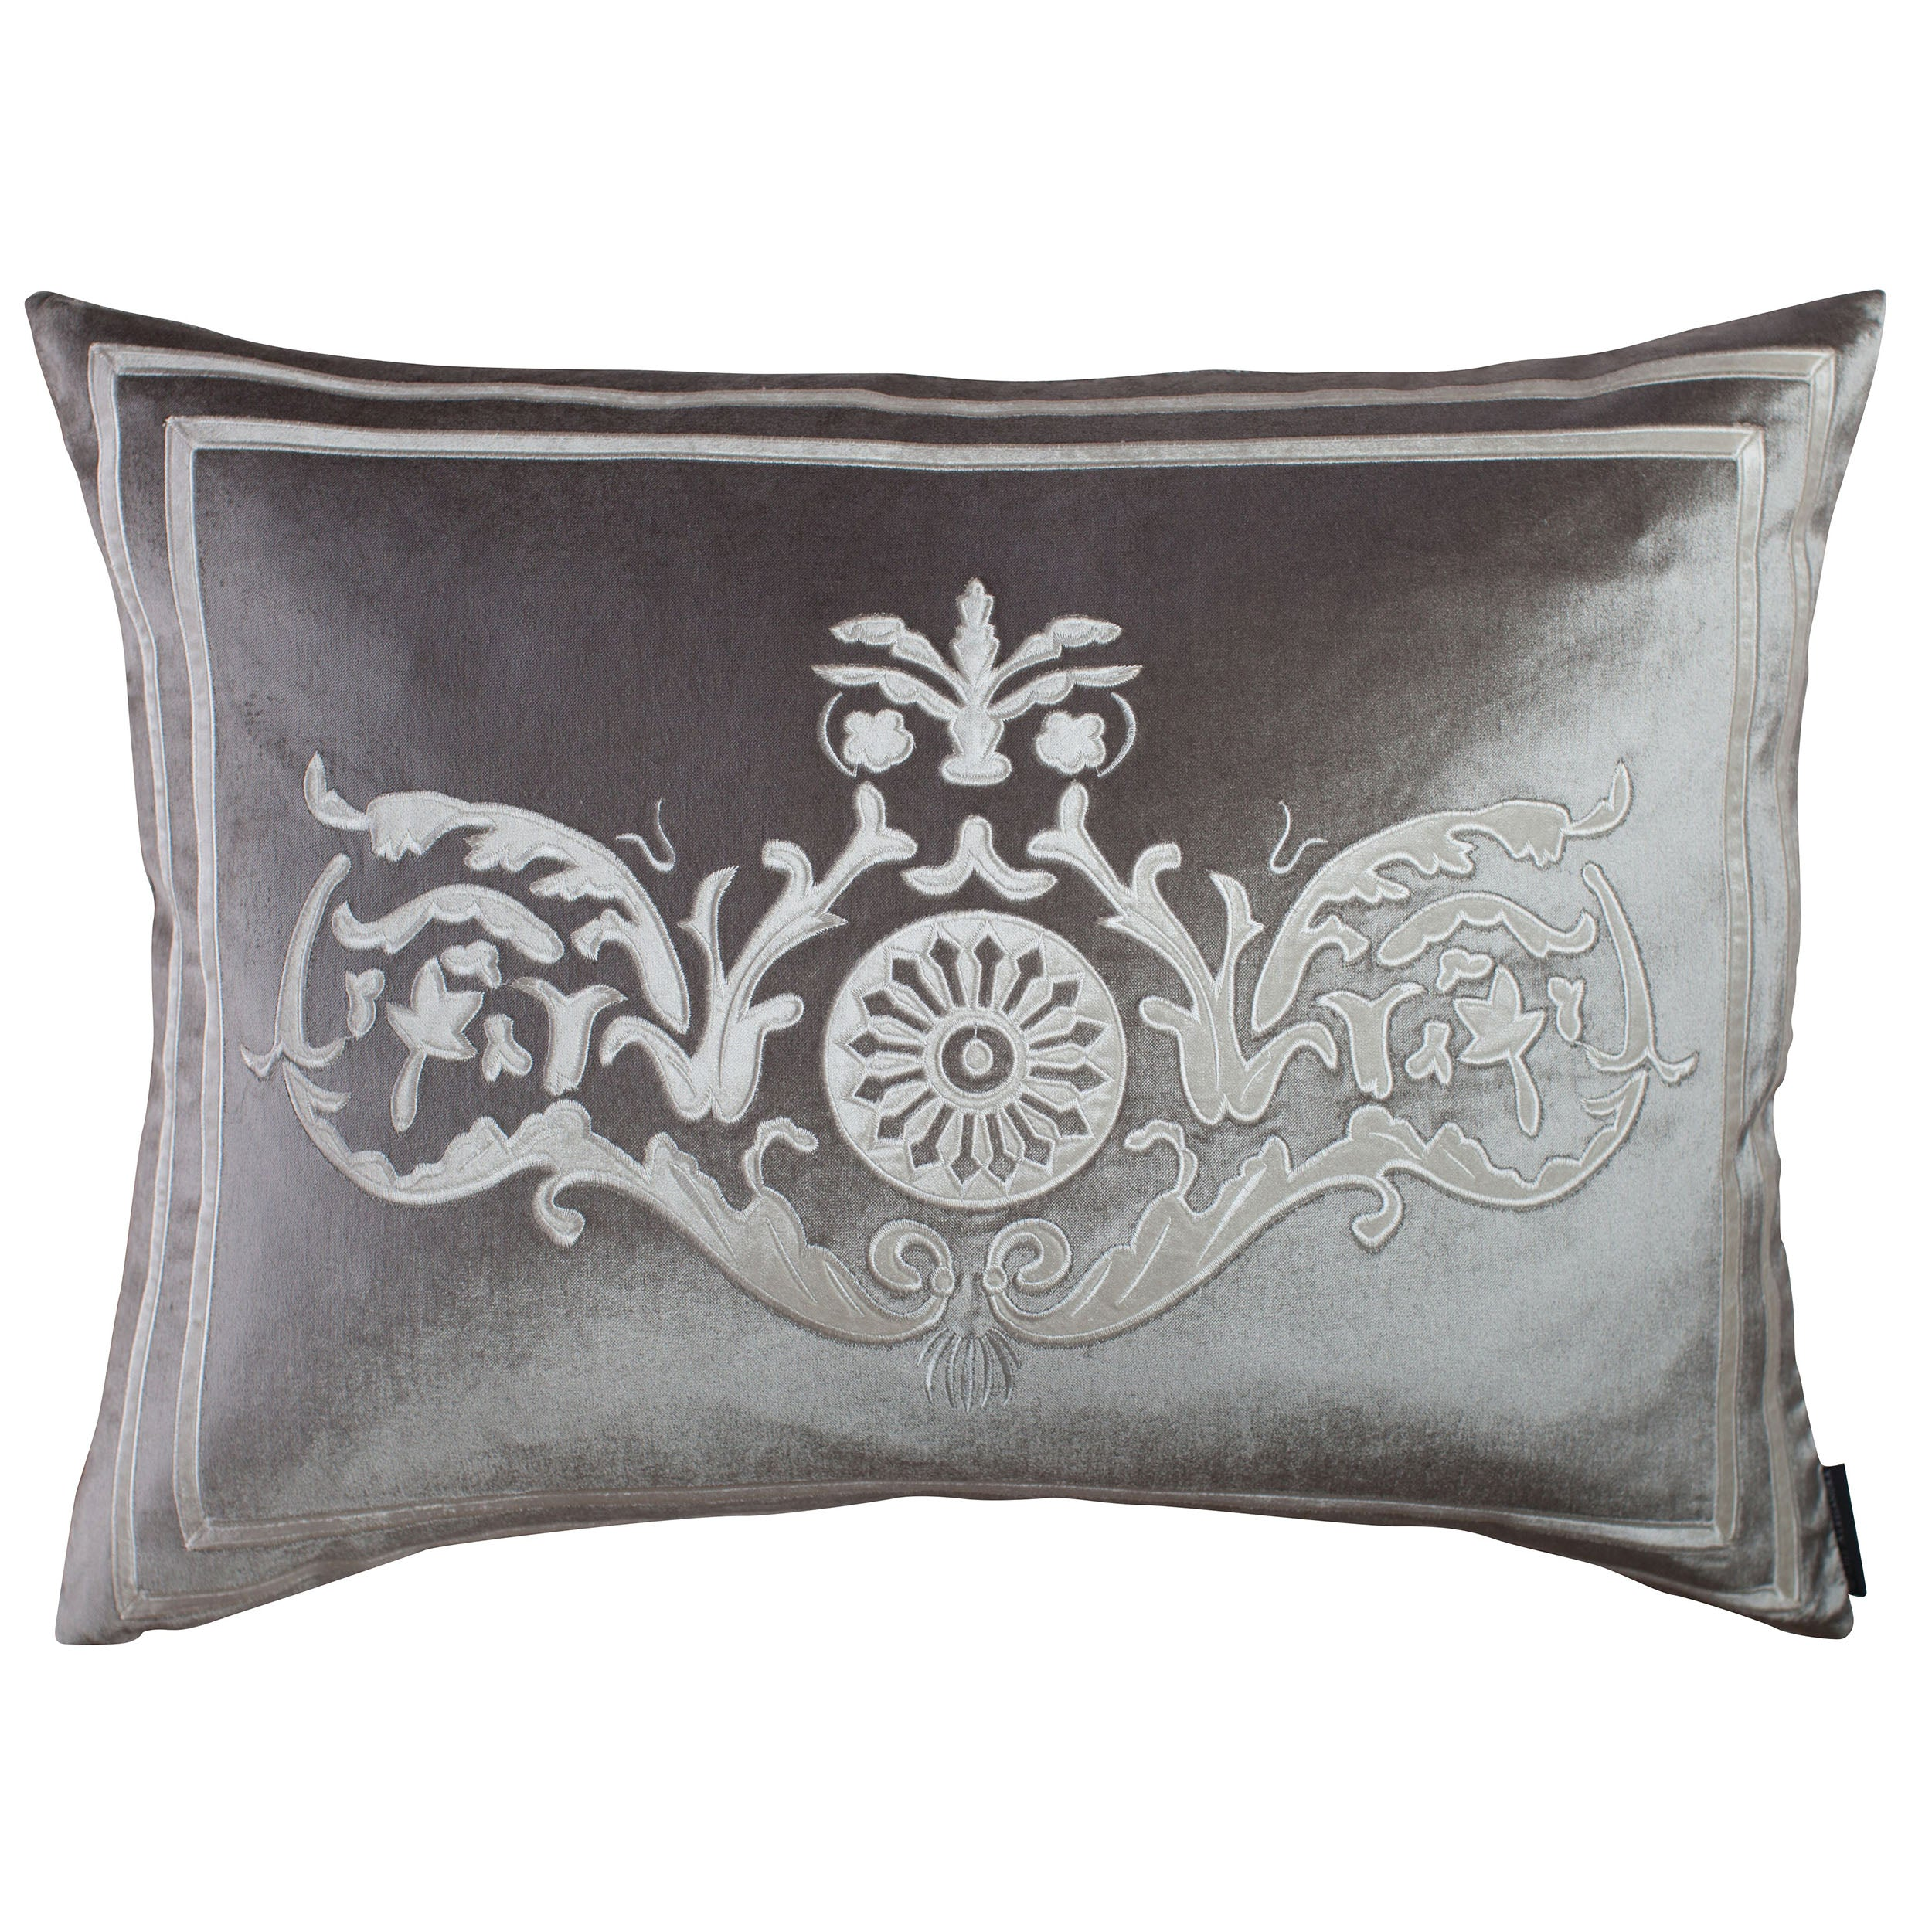 Versailles Silver Paris Velvet Pillow - Lili Alessandra Throw Pillows By Lili Alessandra